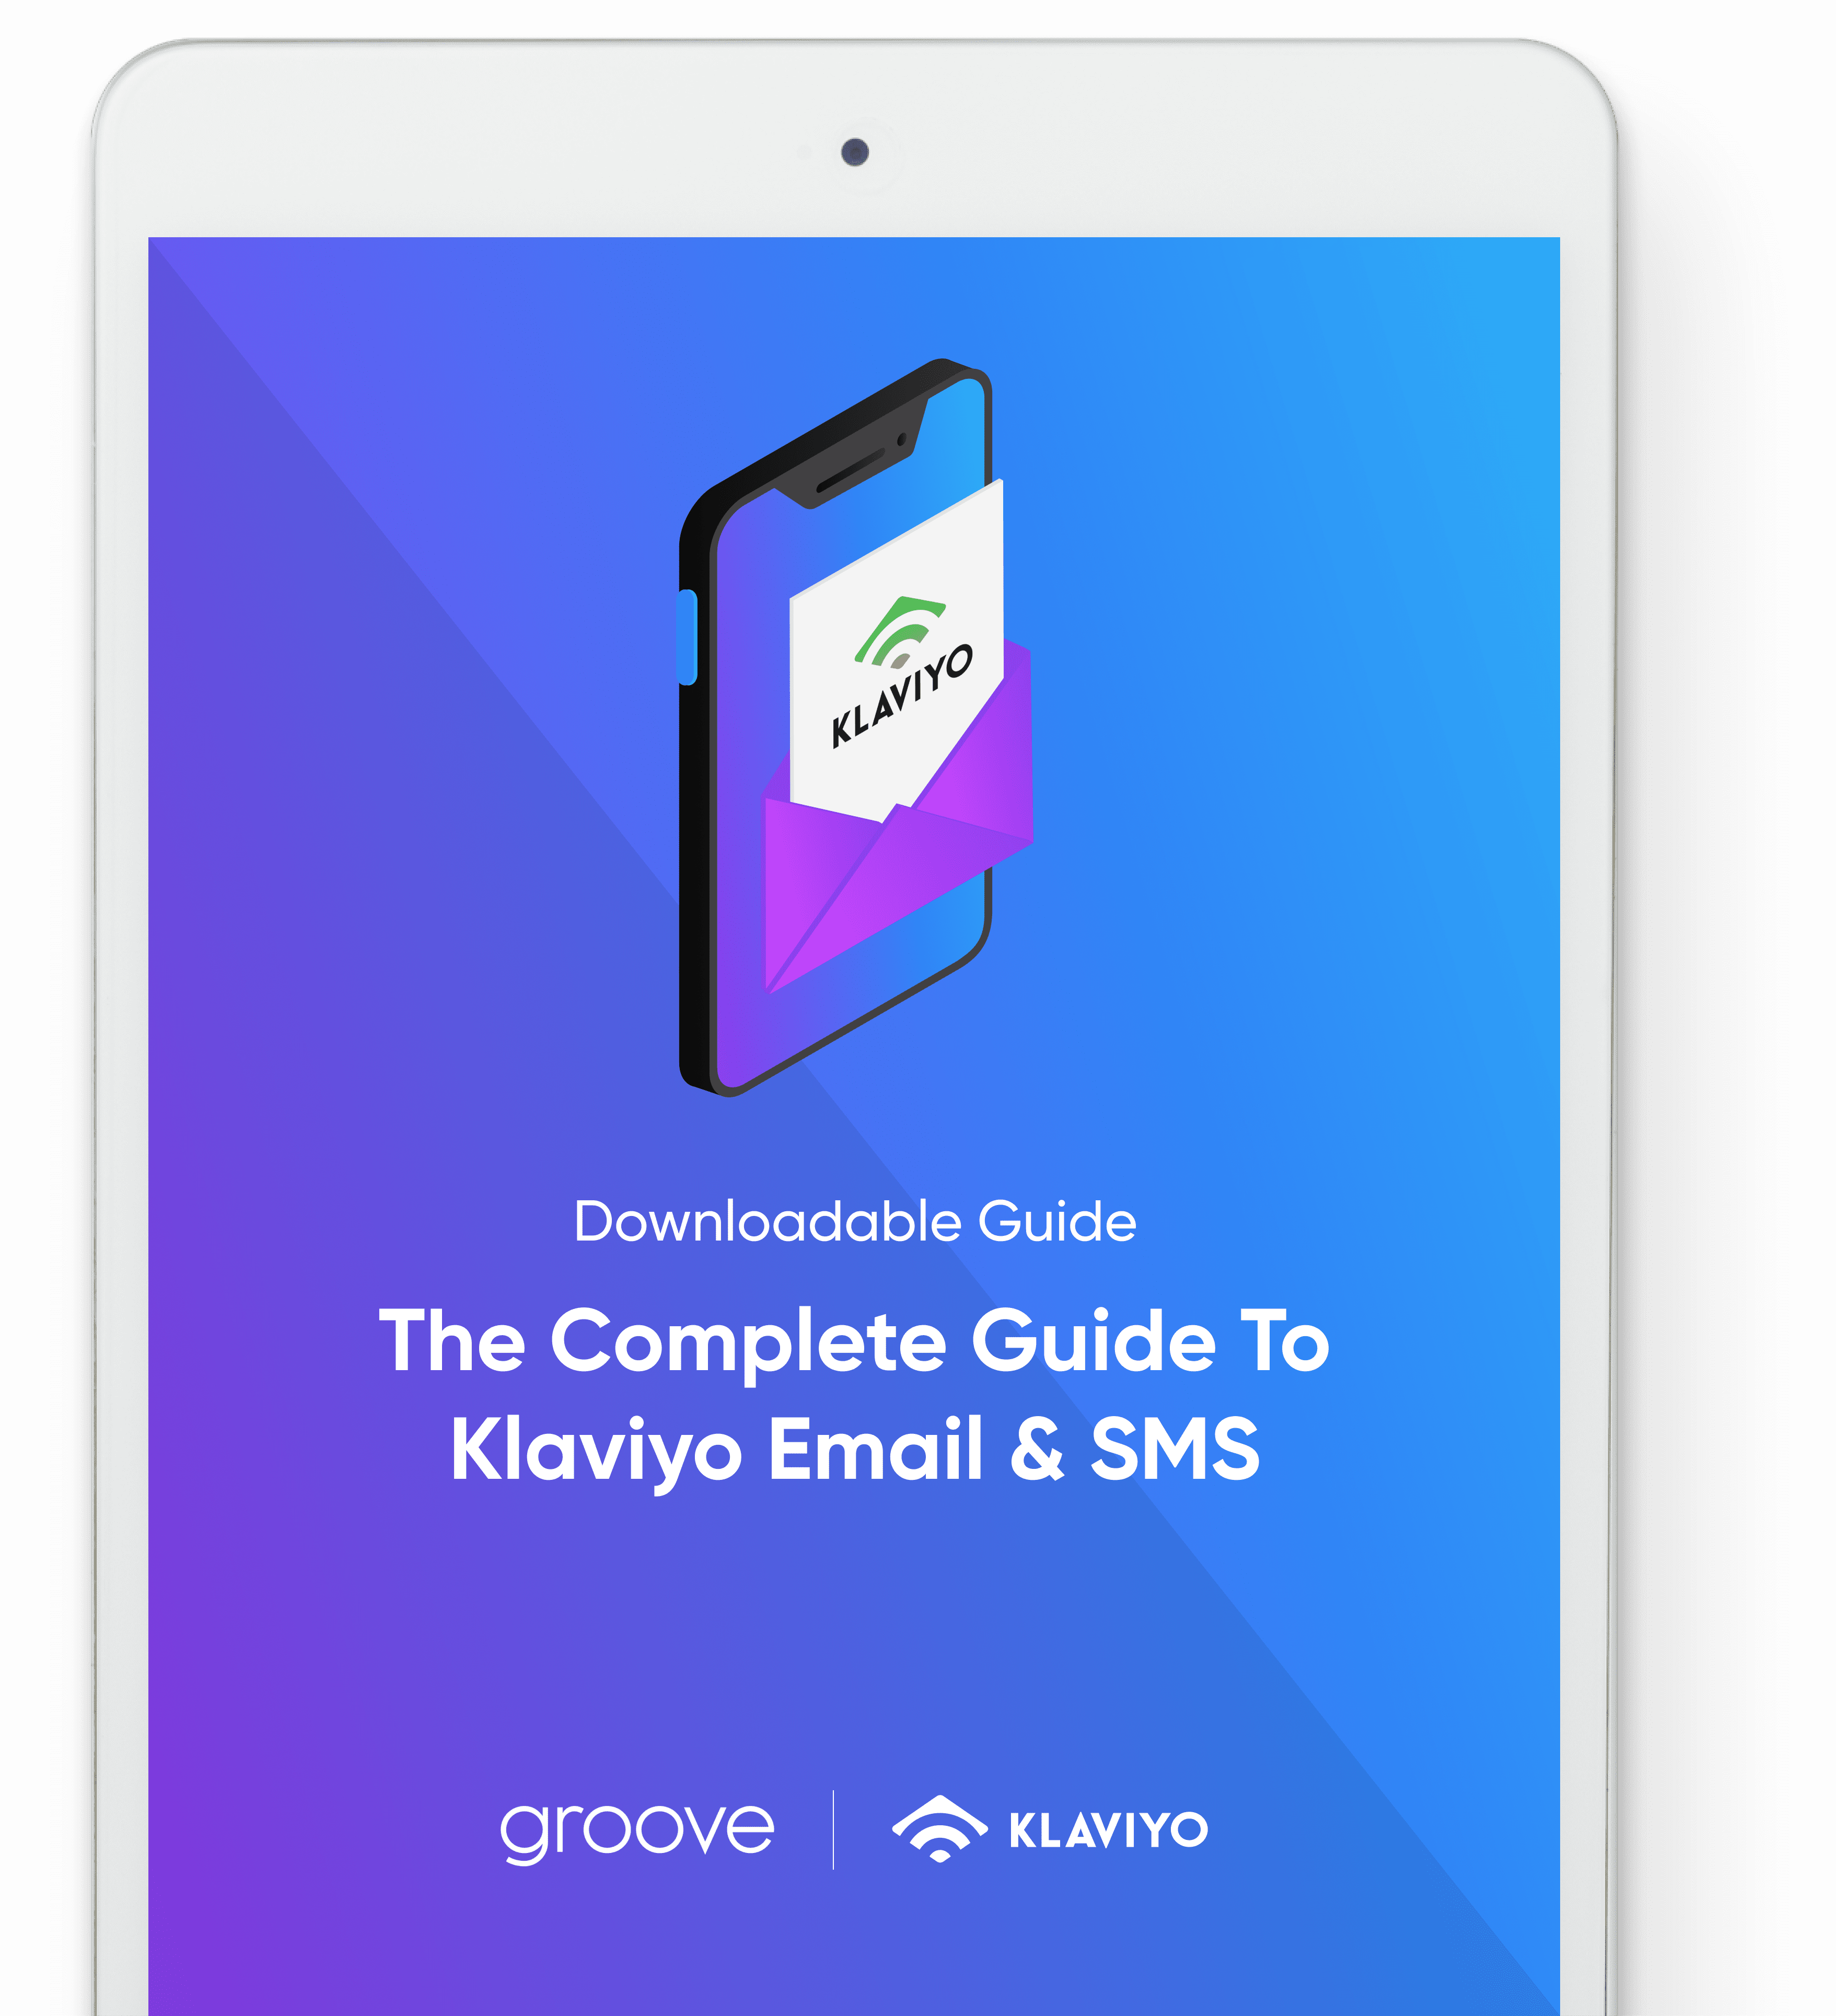 The Complete Guide to Klaviyo Email & SMS